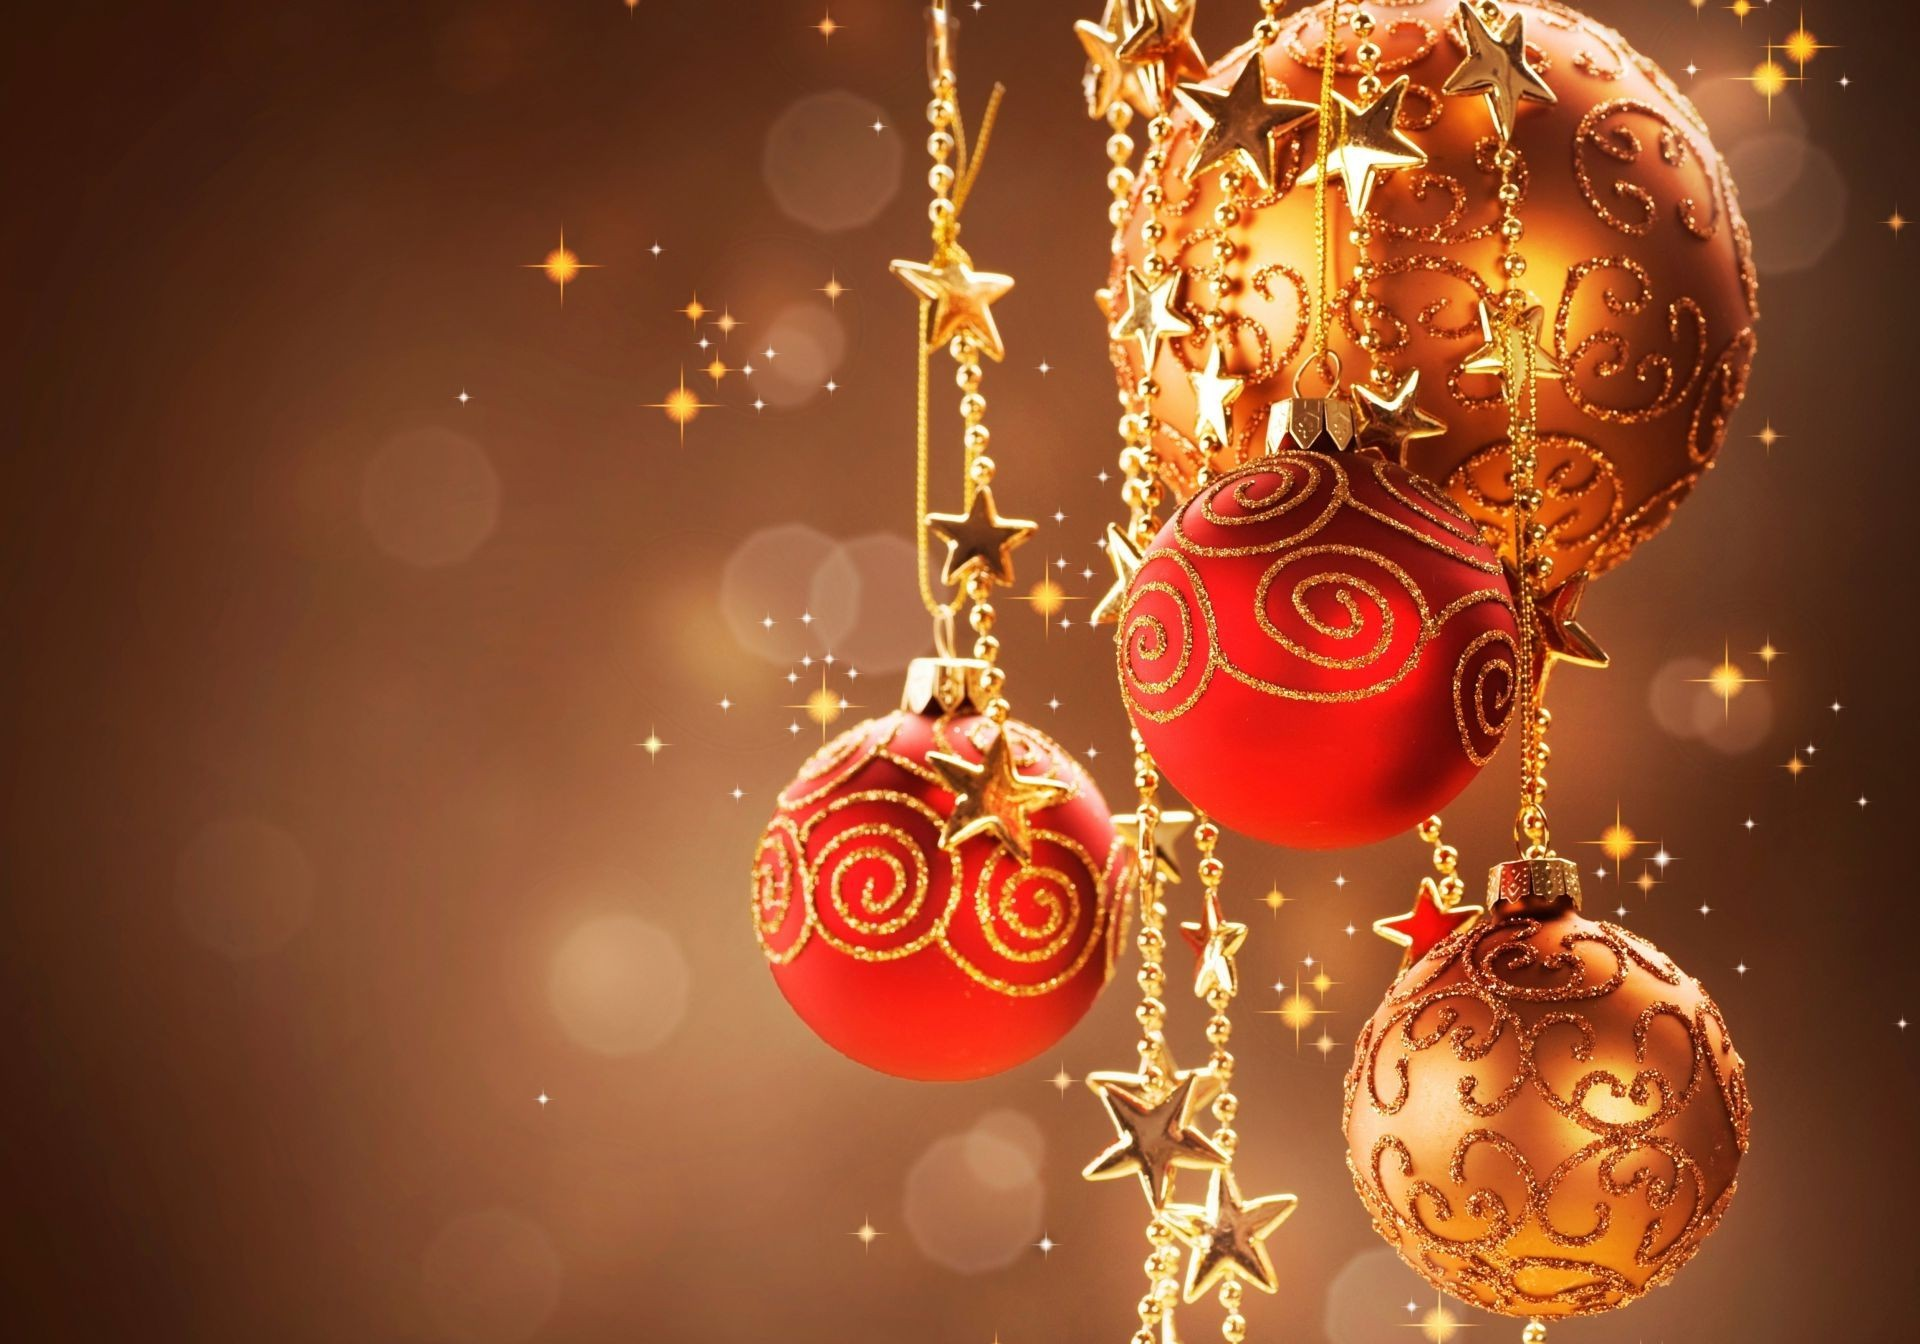 1920x1200 christmas ball wallpaper